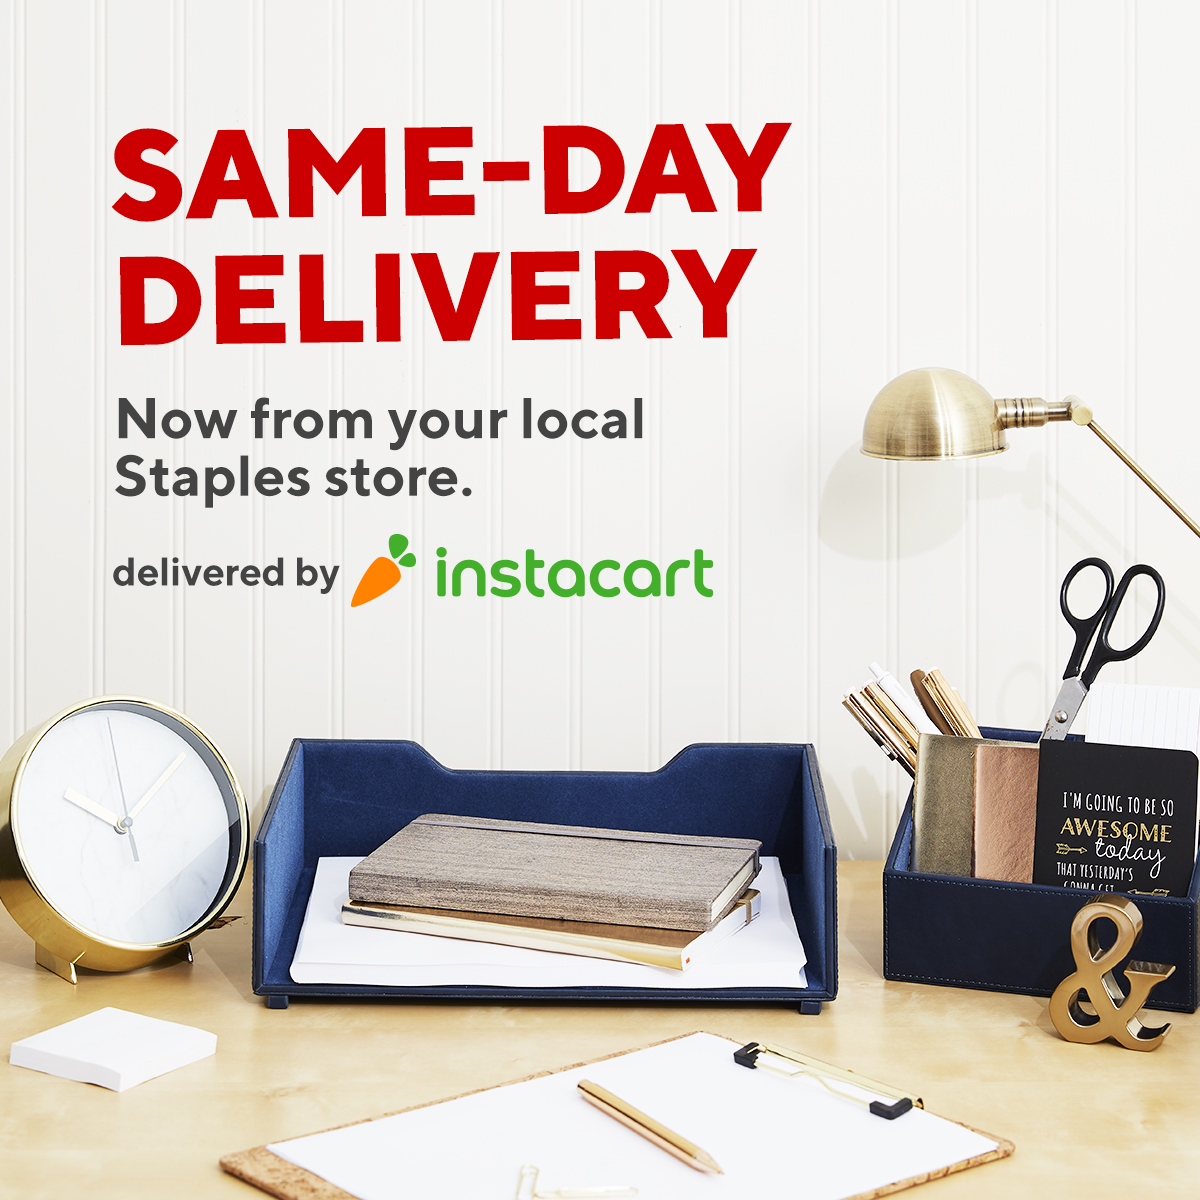 Introducing same-day delivery with @Instacart — a quick, convenient and safe shopping option. Order now: https://t.co/WGPCvucCp0 https://t.co/4b2JxpYz2T